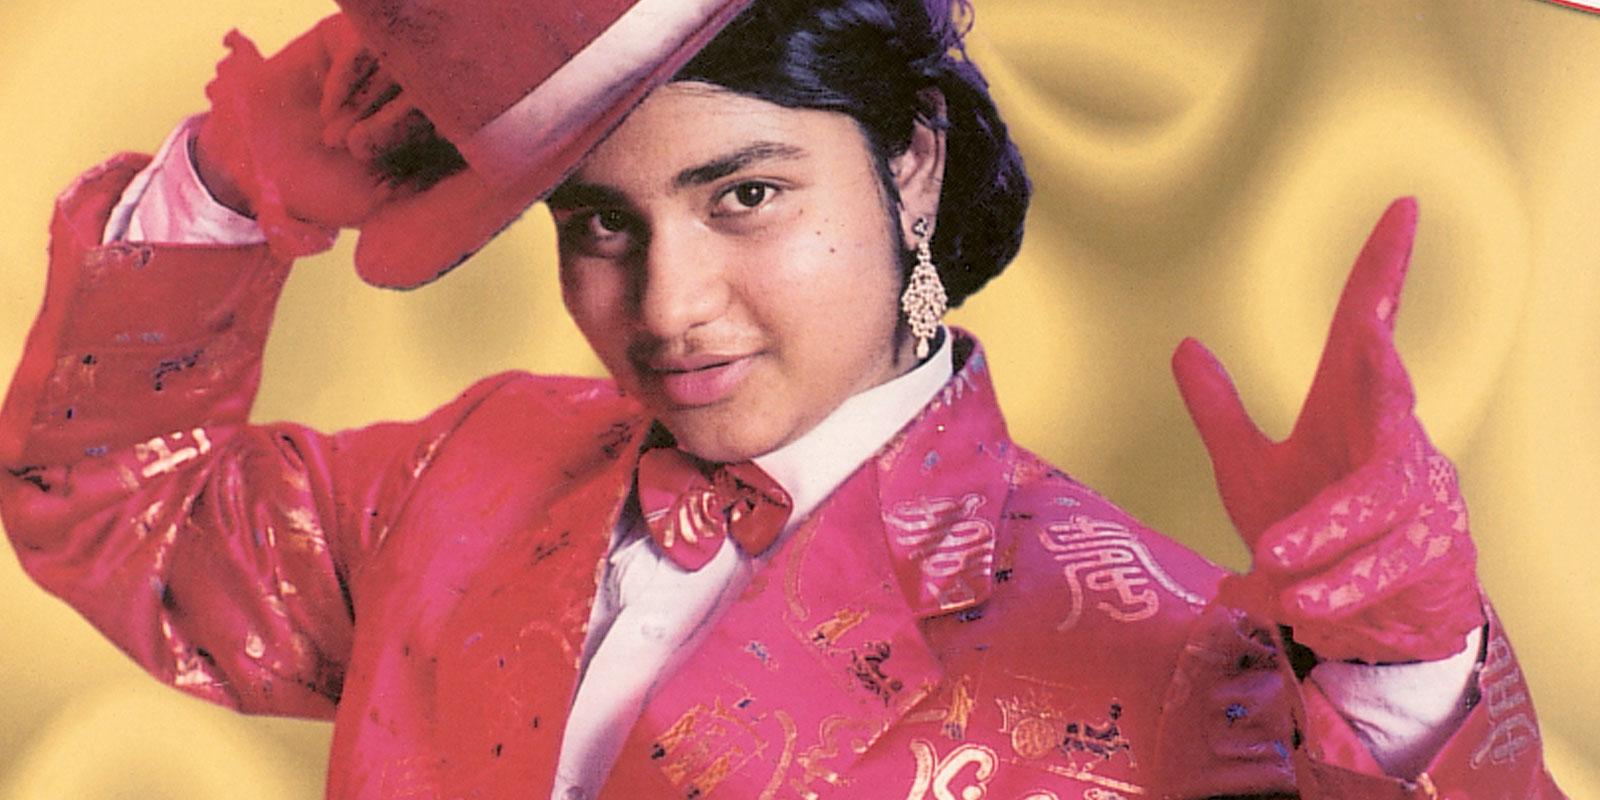 Kruti as a magician